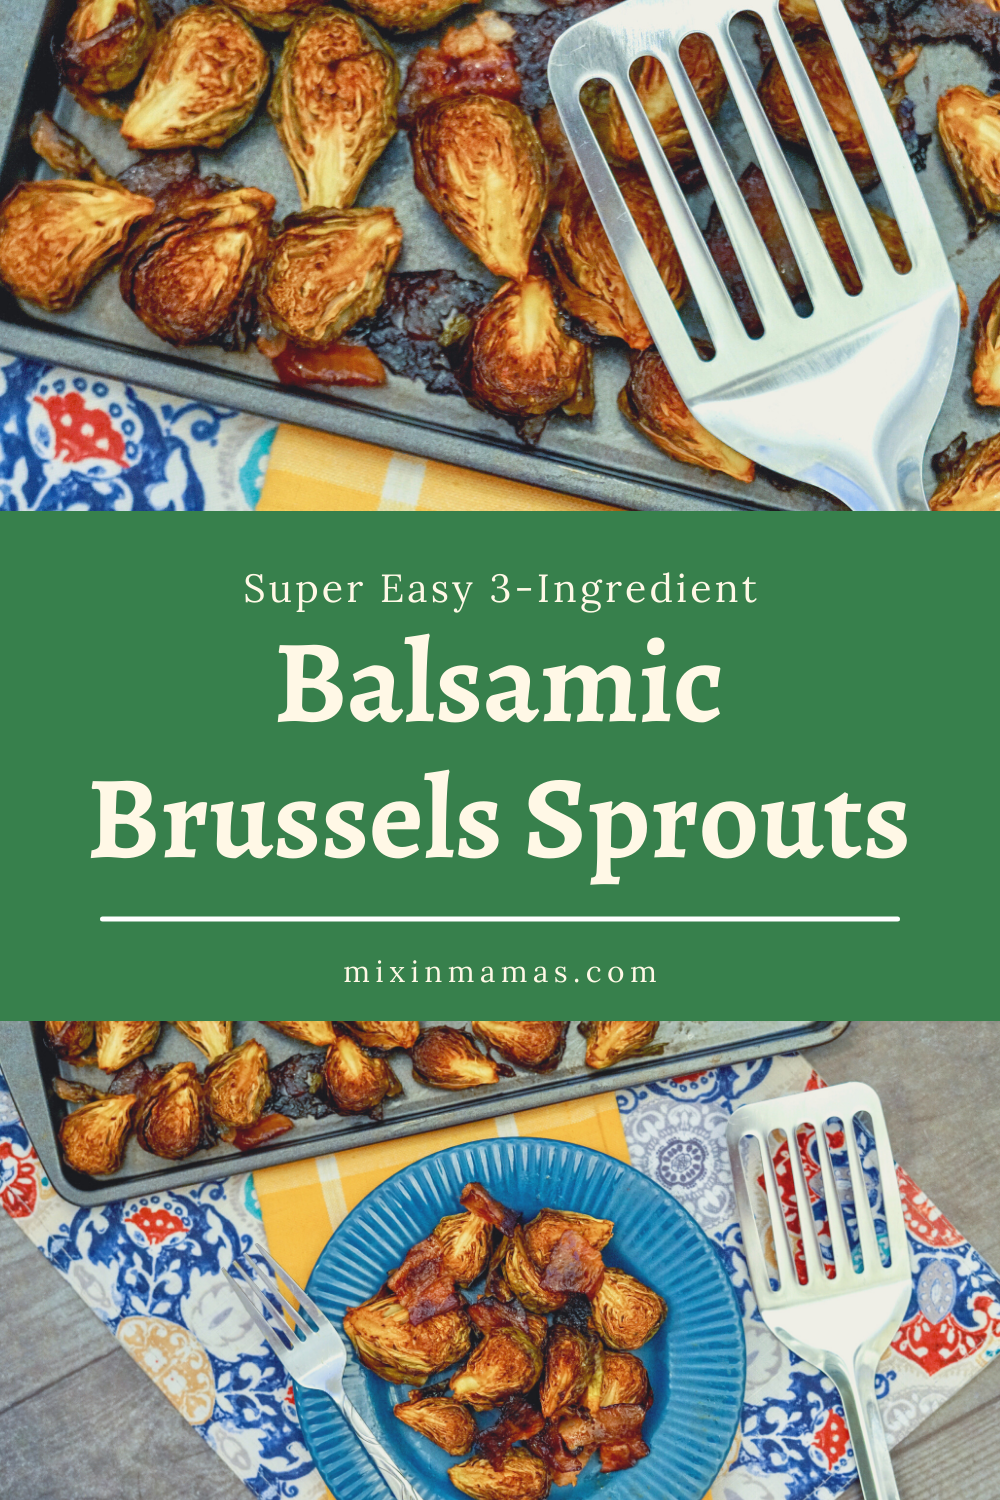 Super Easy 3-Ingredient Balsamic Brussels Sprouts